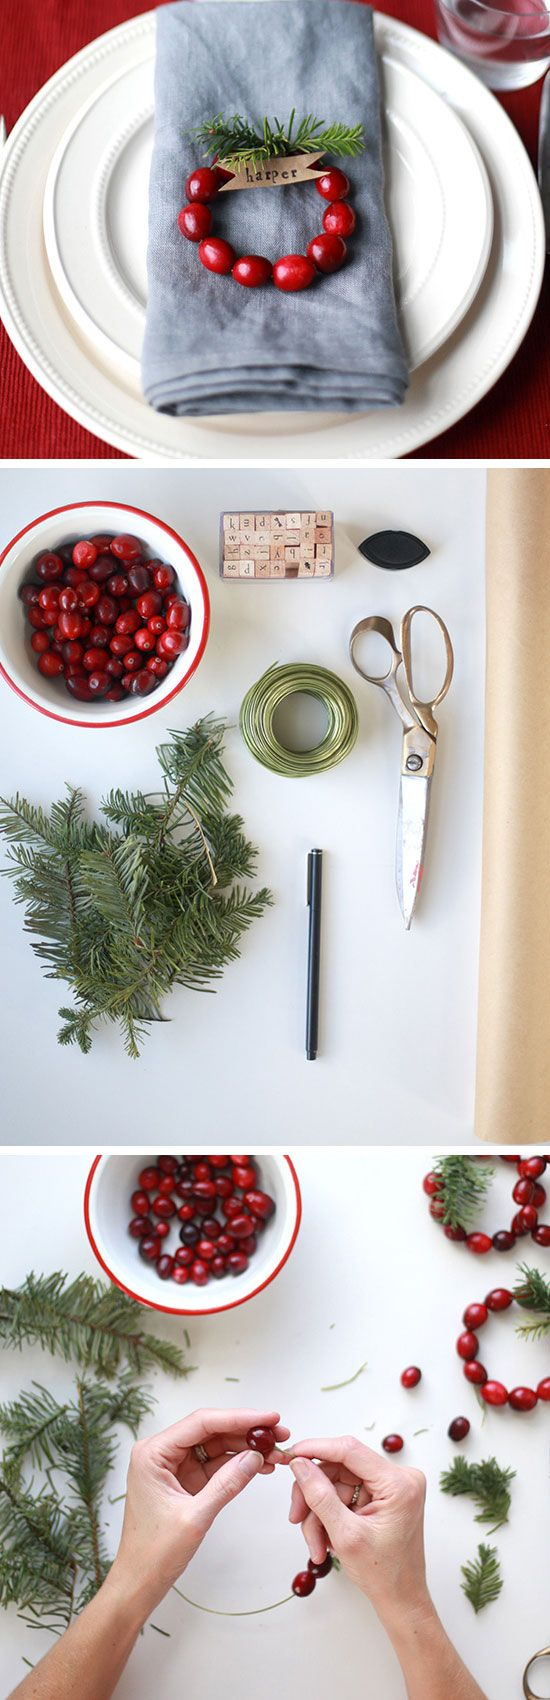 épinglé par ❃❀CM❁✿DIY Mini Cranberry Wreath Place Cards | Click for 30 DIY Christmas Table…